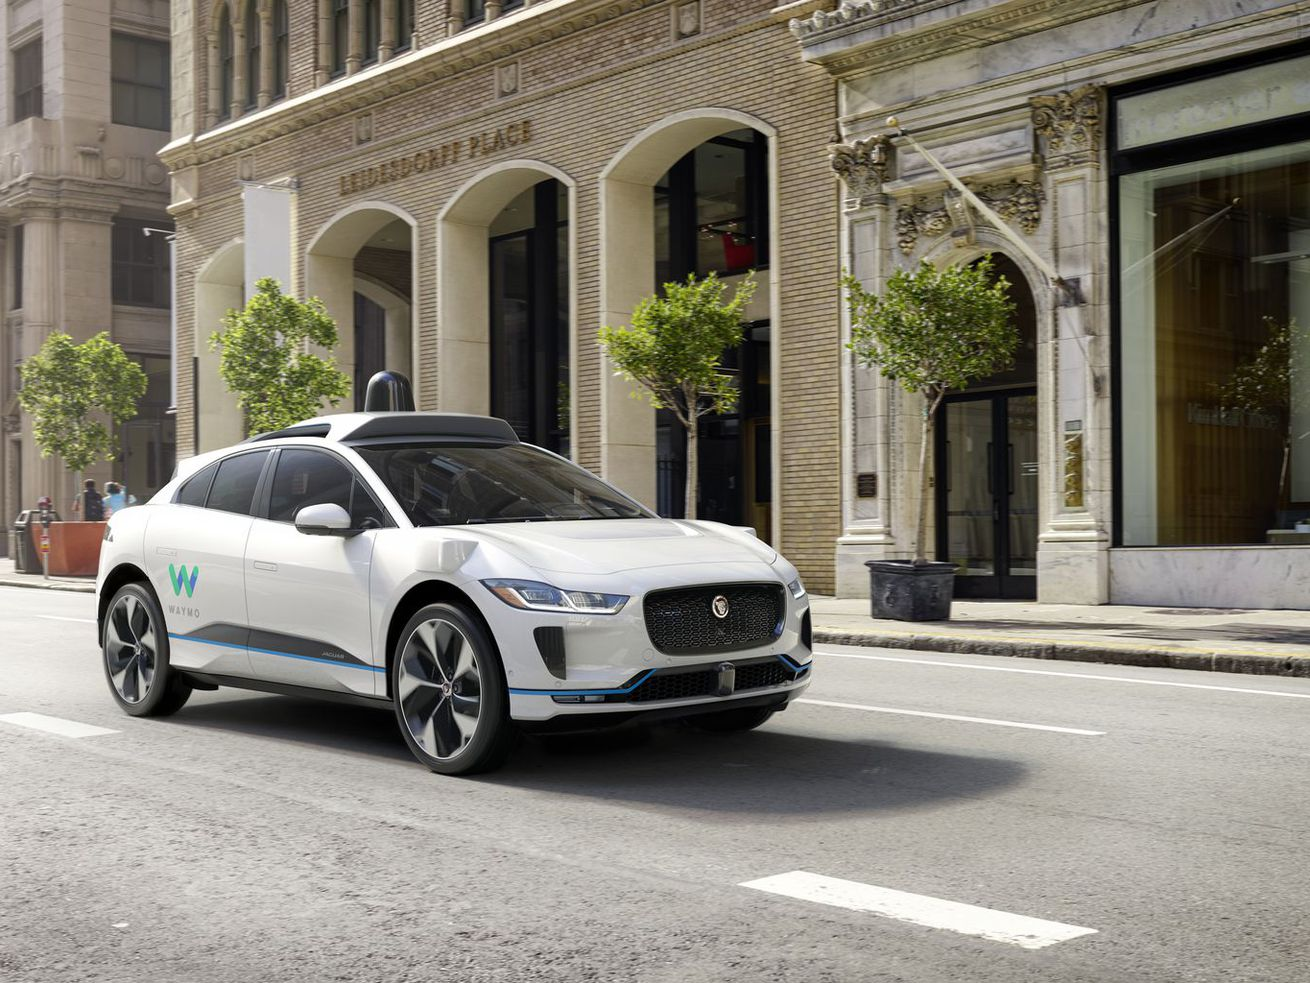 By 2020, Waymo plans to make at least one million self-driving trips per day in the U.S.